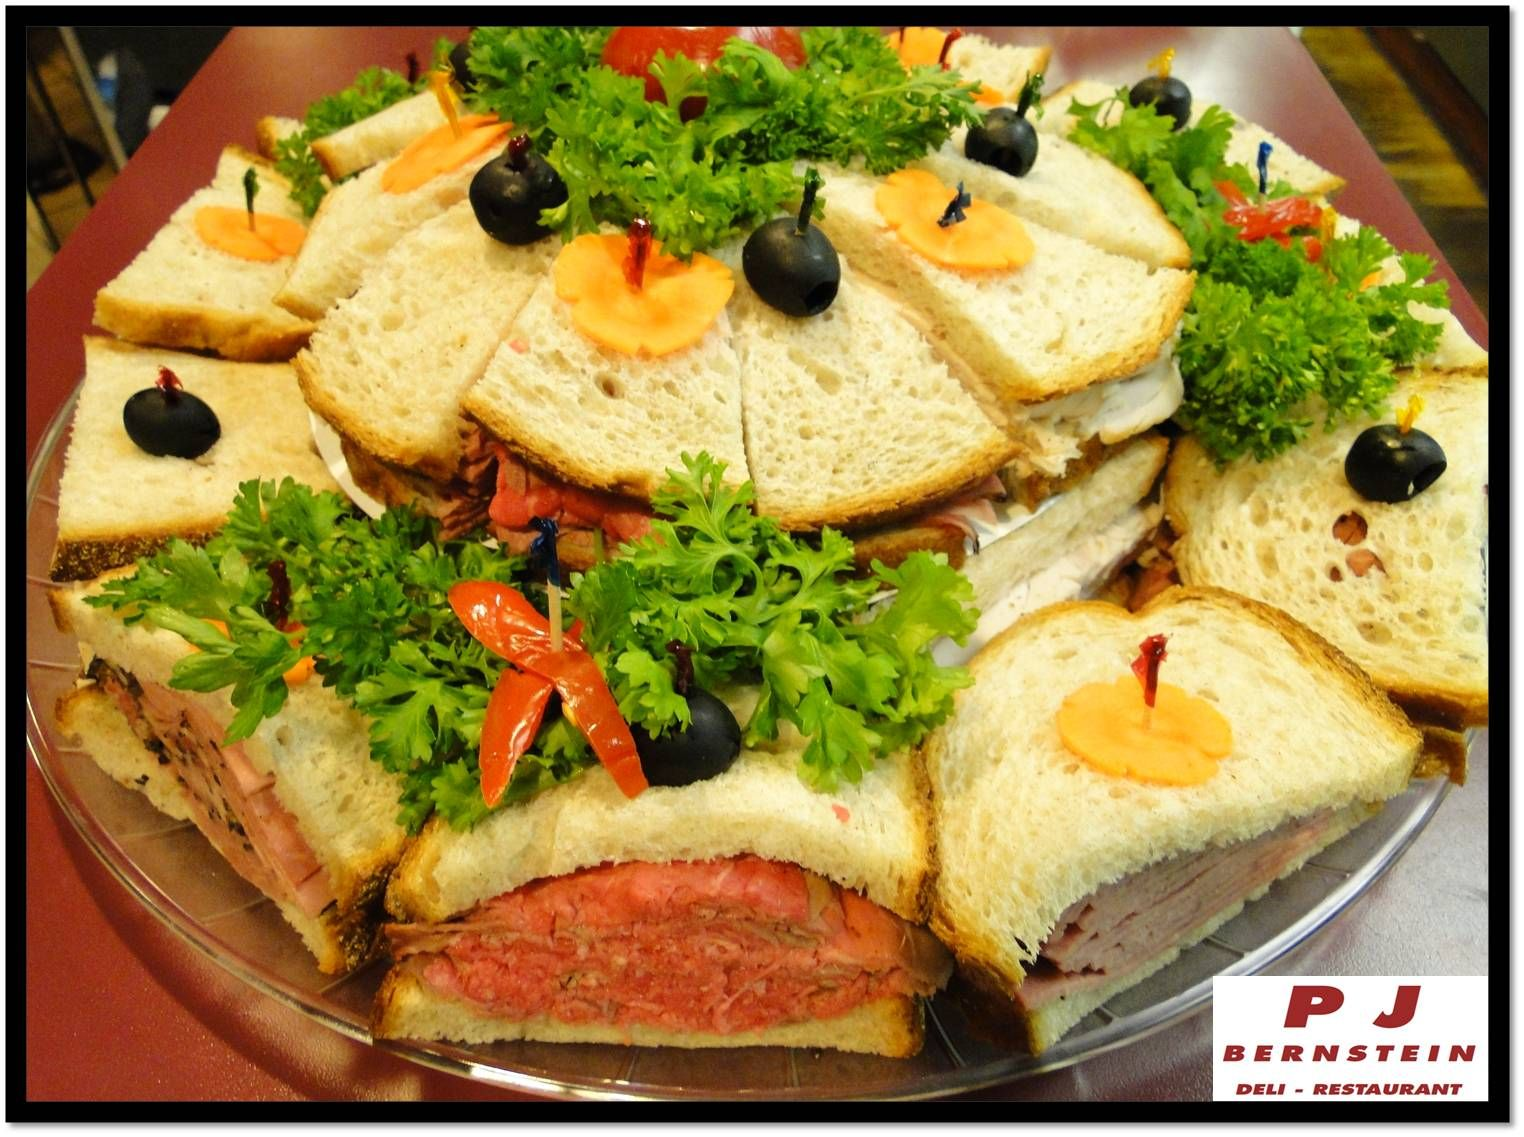 Canapé King Size Deluxe Sandwich Platter 20 King Size Extra Meat Combination